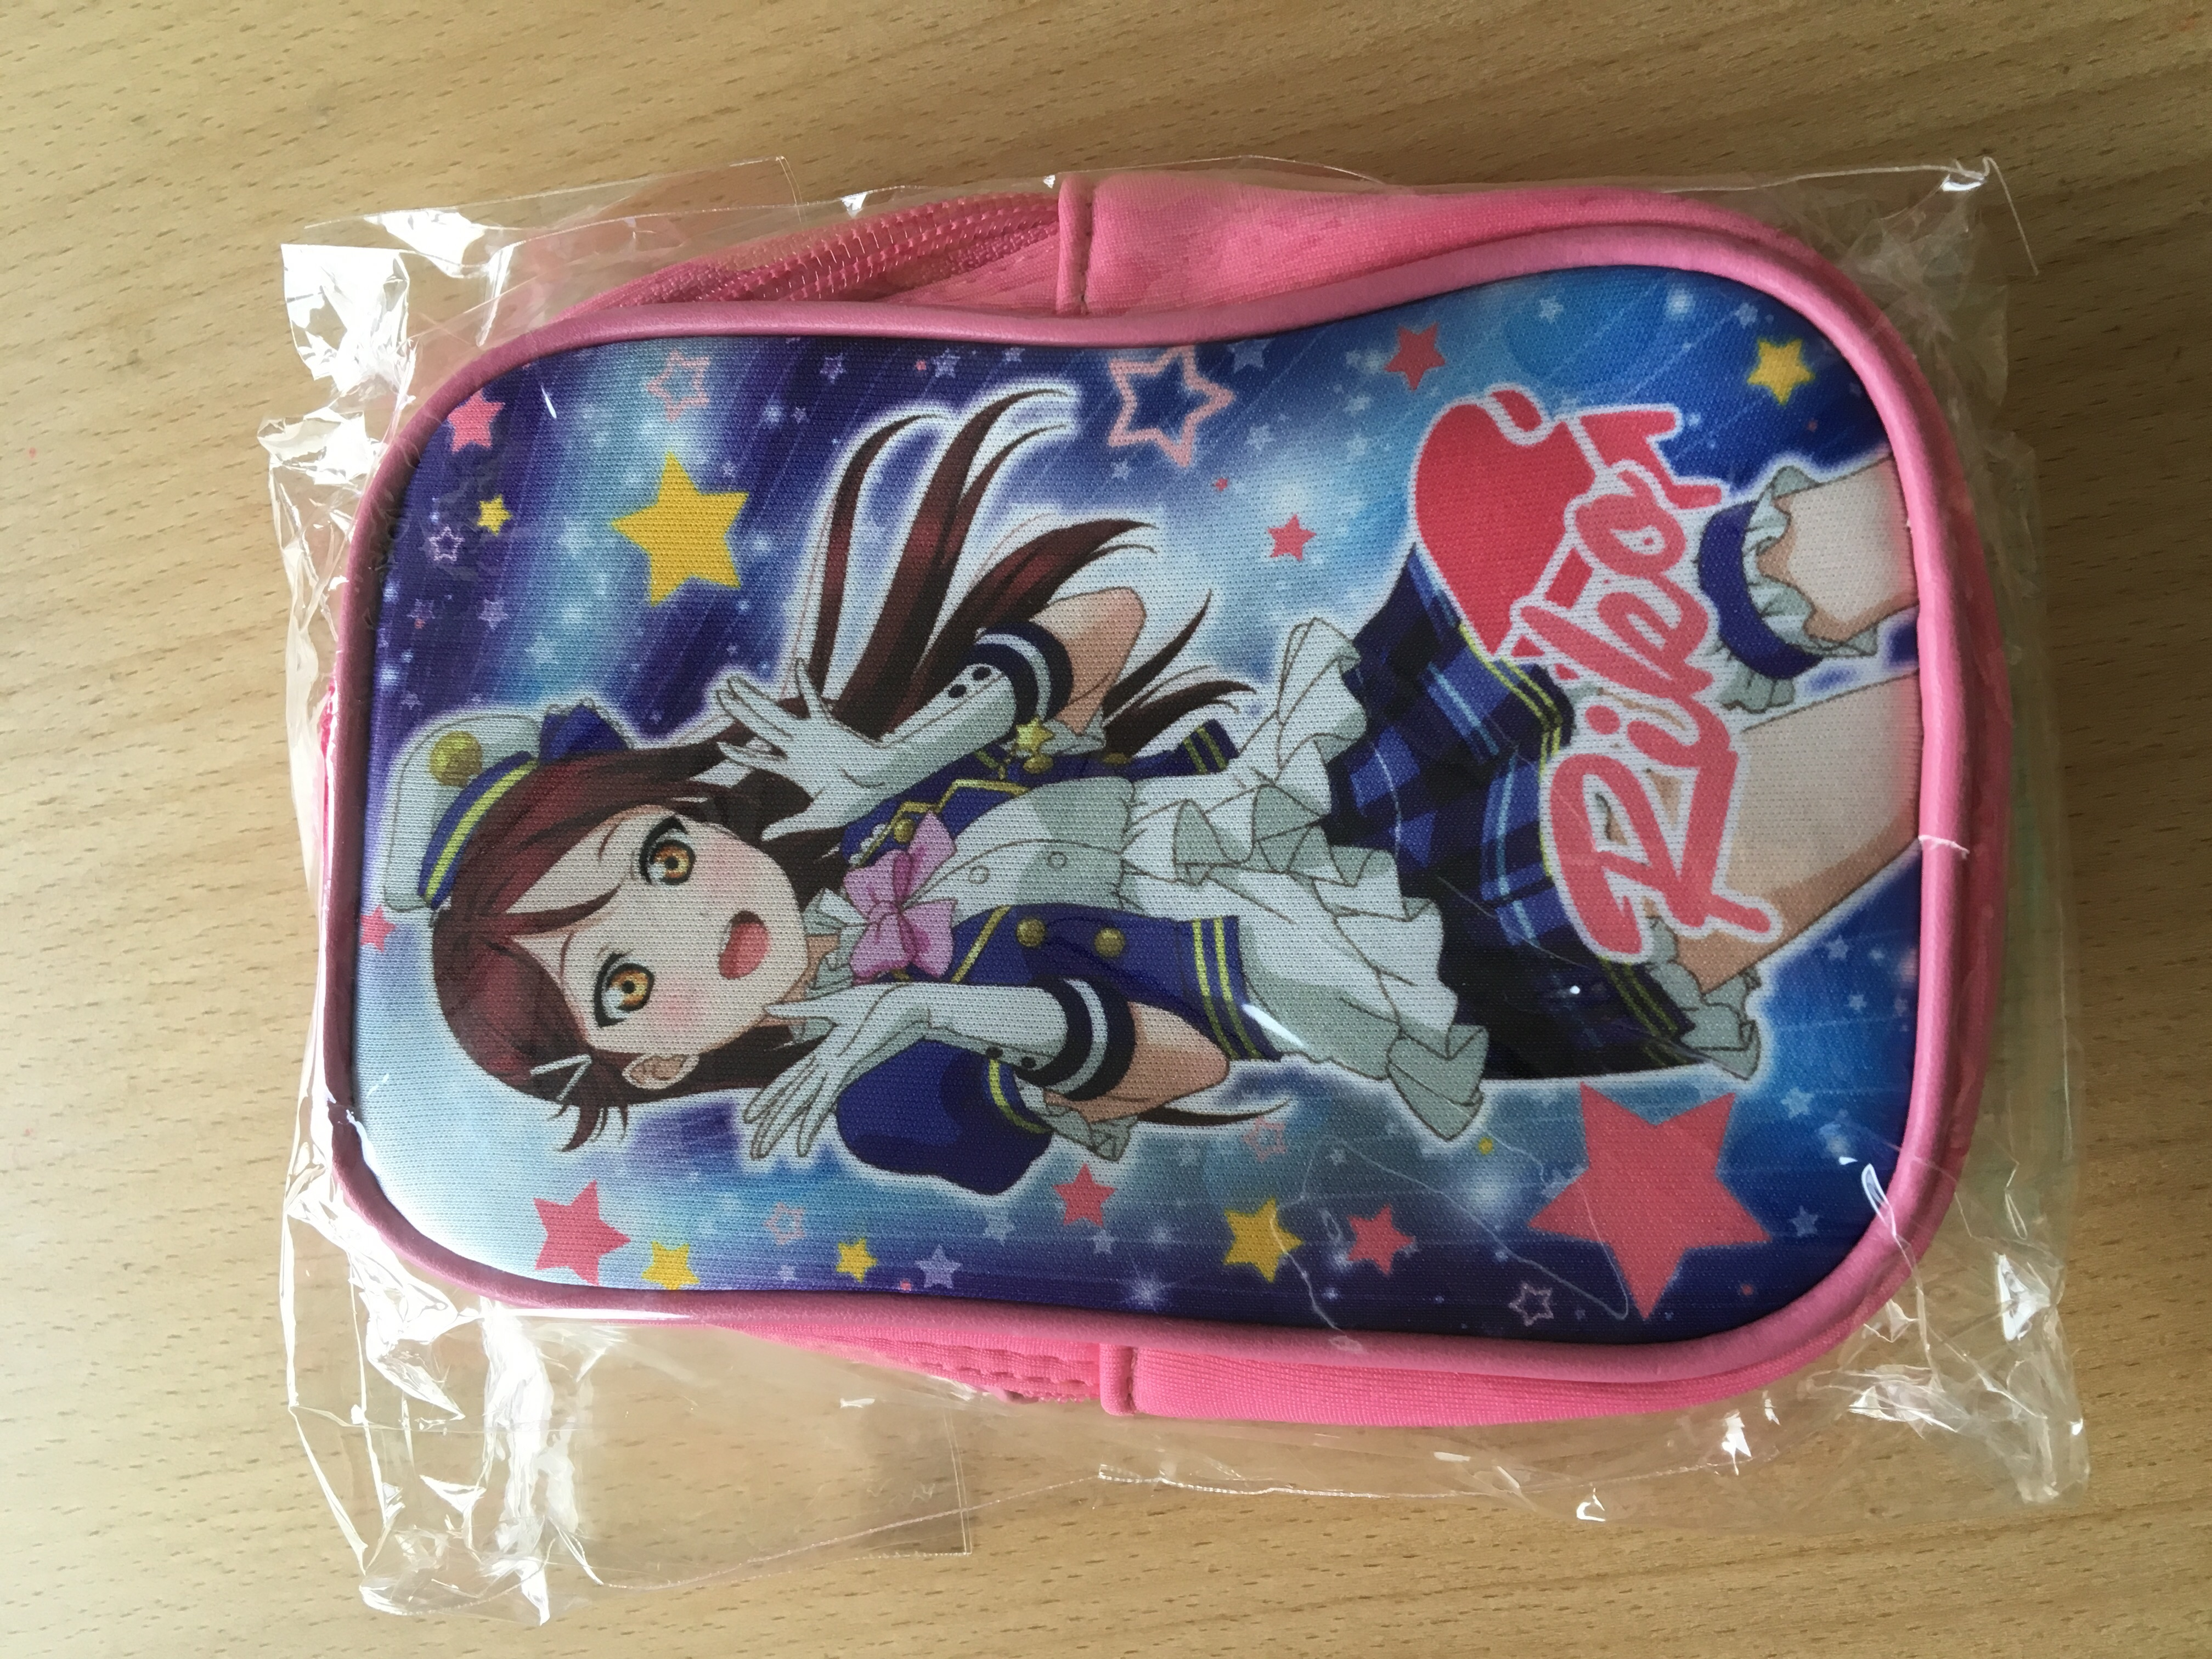 Riko pouch - can carry a smartphone + wallet + makeup easily